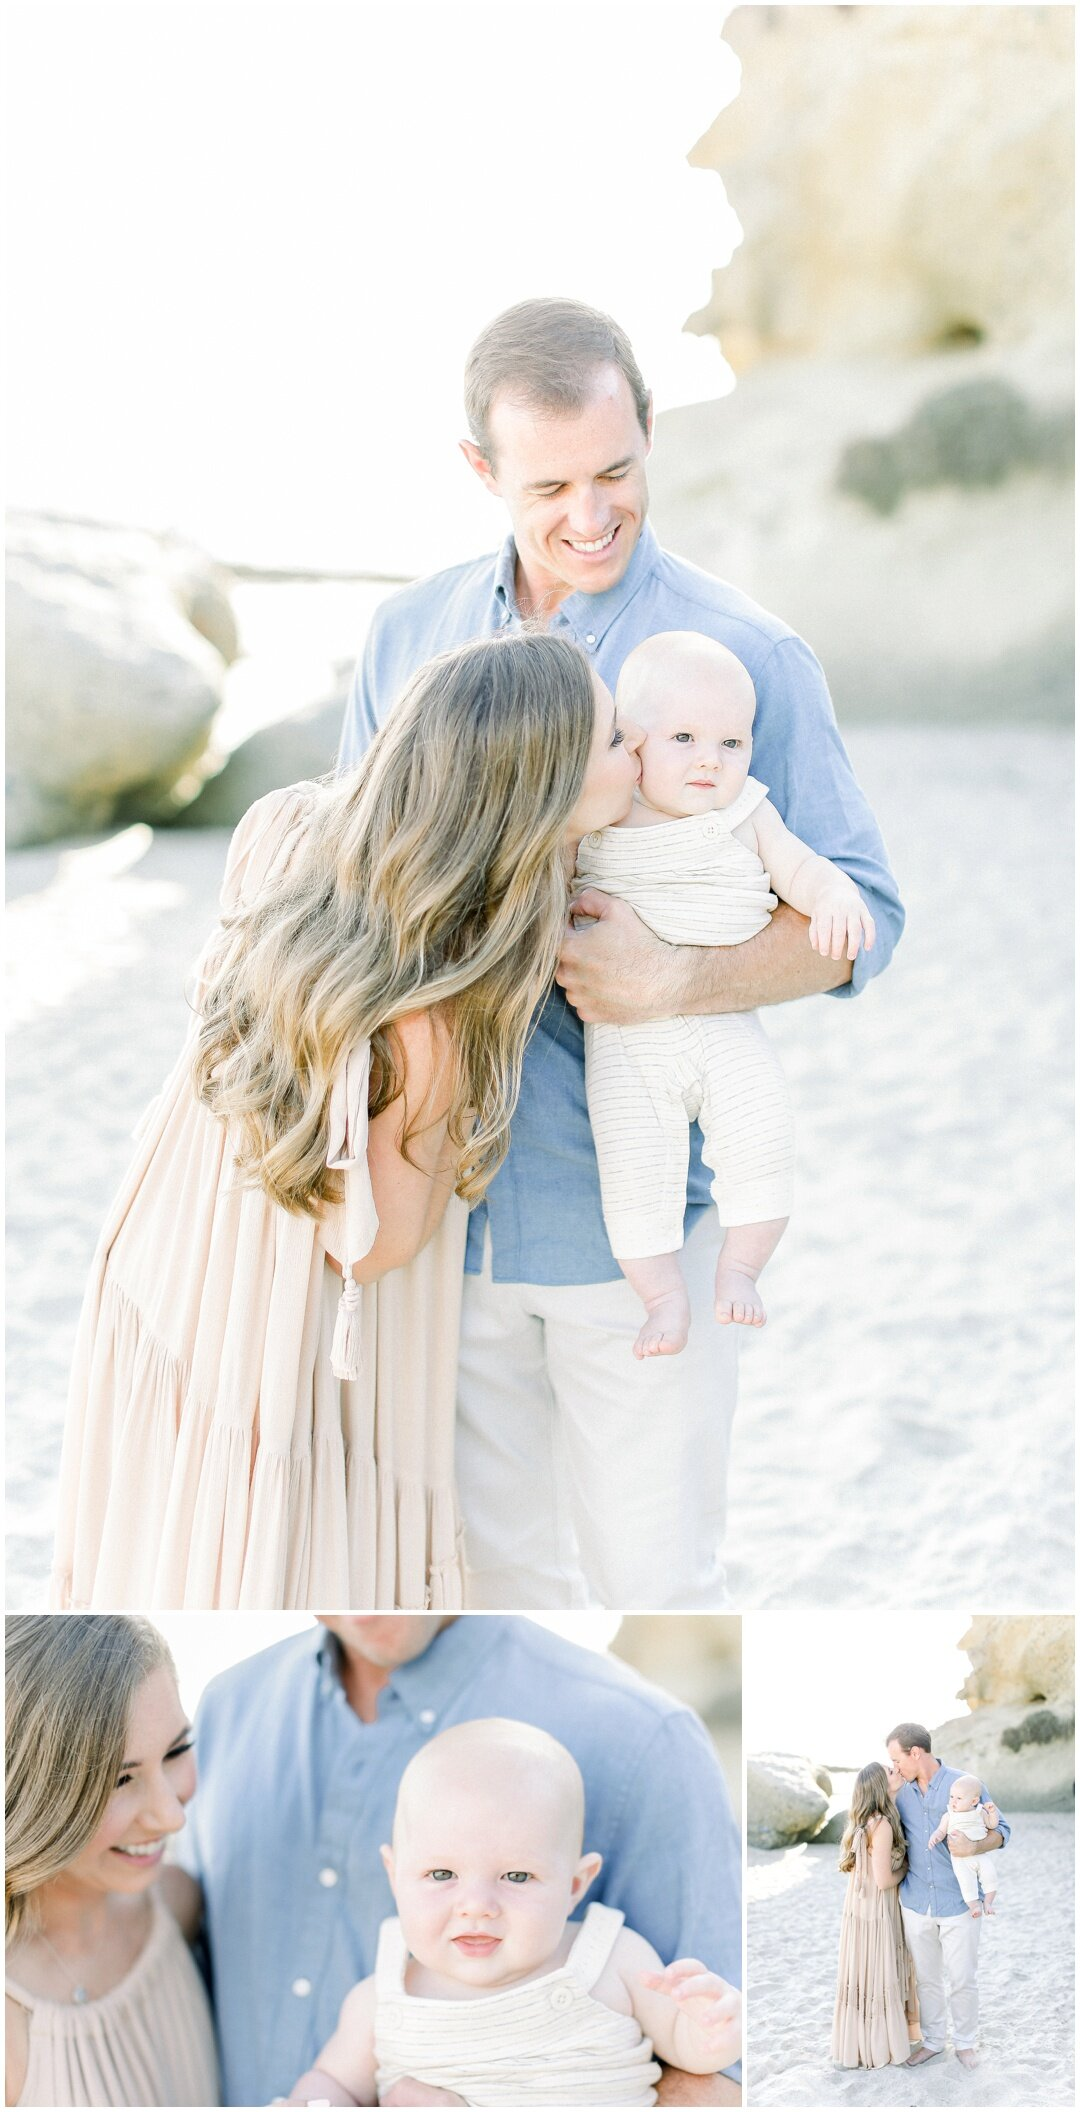 Newport+Beach+Newborn+Maternity+Photographer+Orange+County+Family+Photographer+Cori+Kleckner+Photography+Forgatch+Family+Matt+Kelley+Jack+Forgatch+_4420.jpg